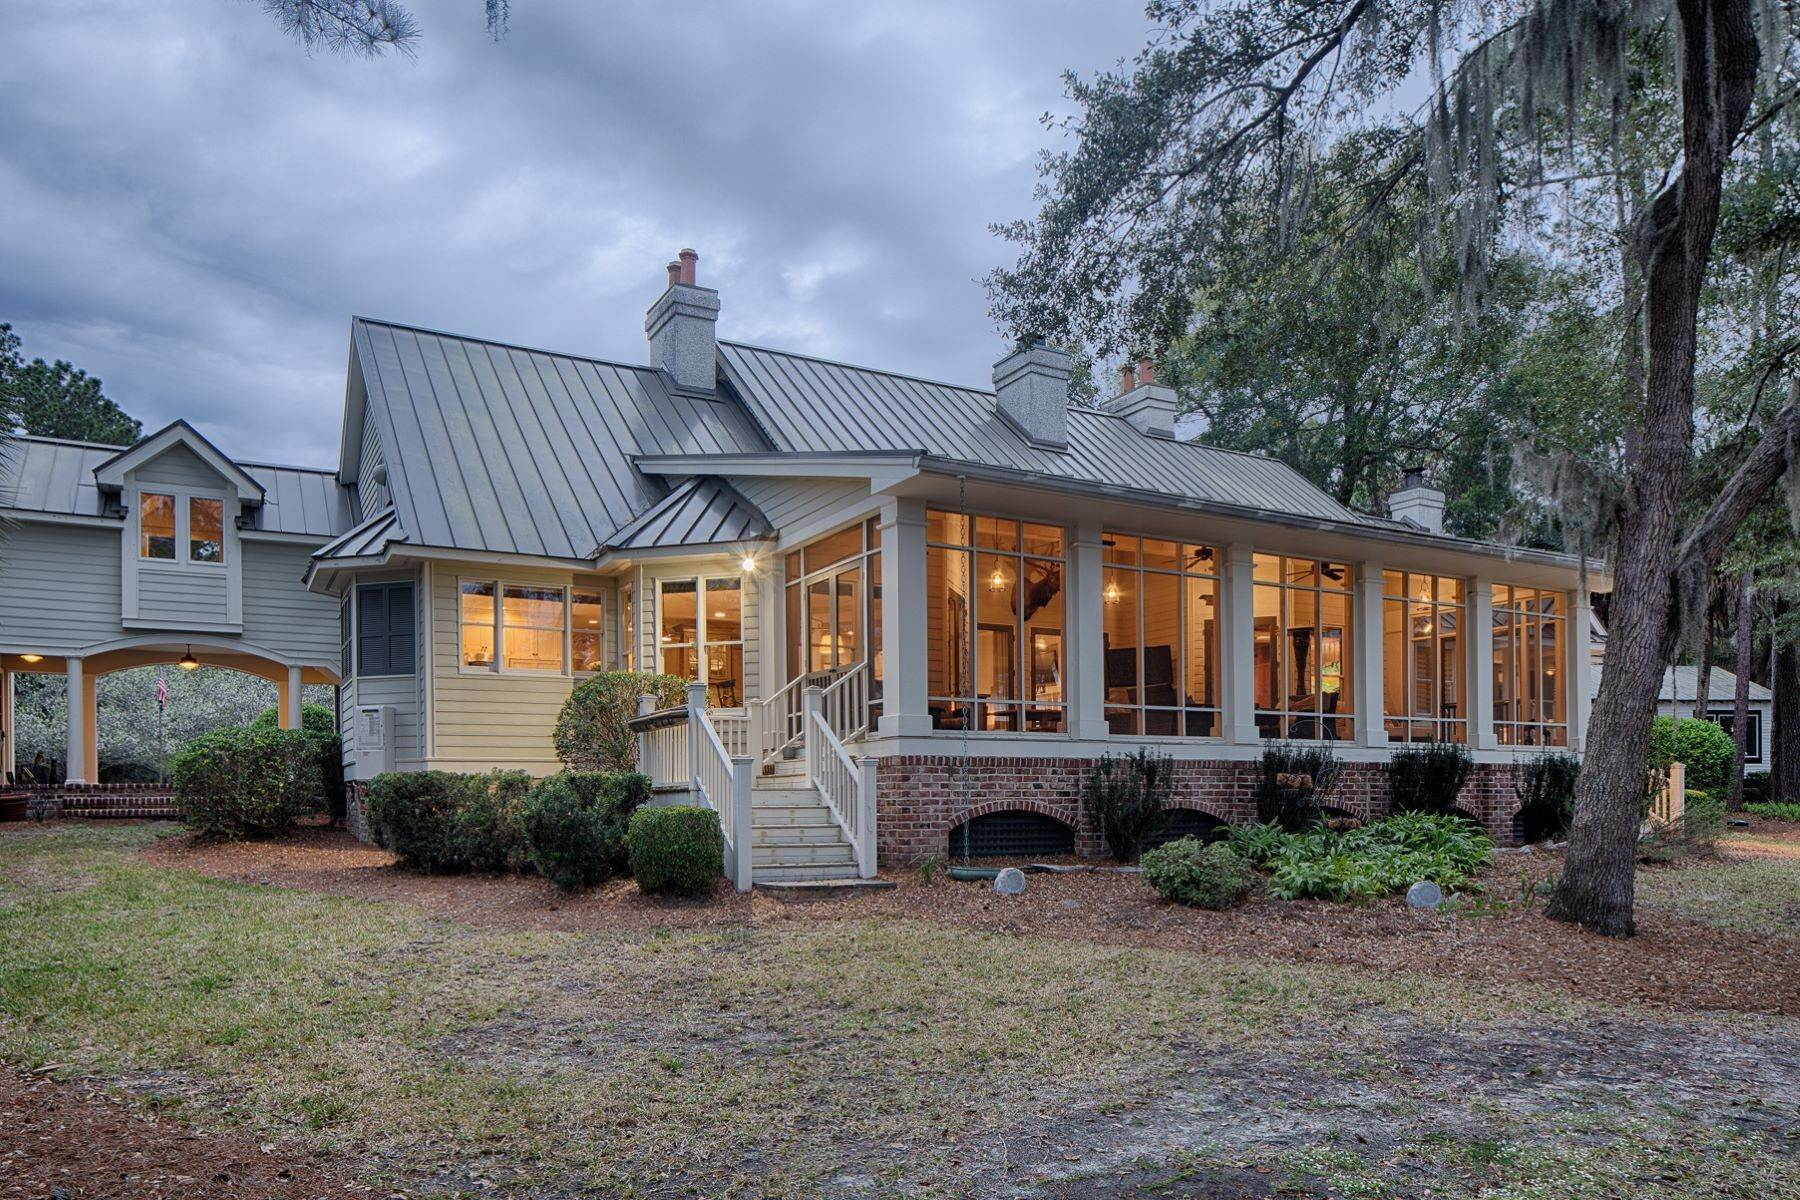 42. Single Family Homes for Sale at 7 Acres in Gascoigne Bluff 155 Gascoigne Bluff Road Bluffton, South Carolina 29910 United States